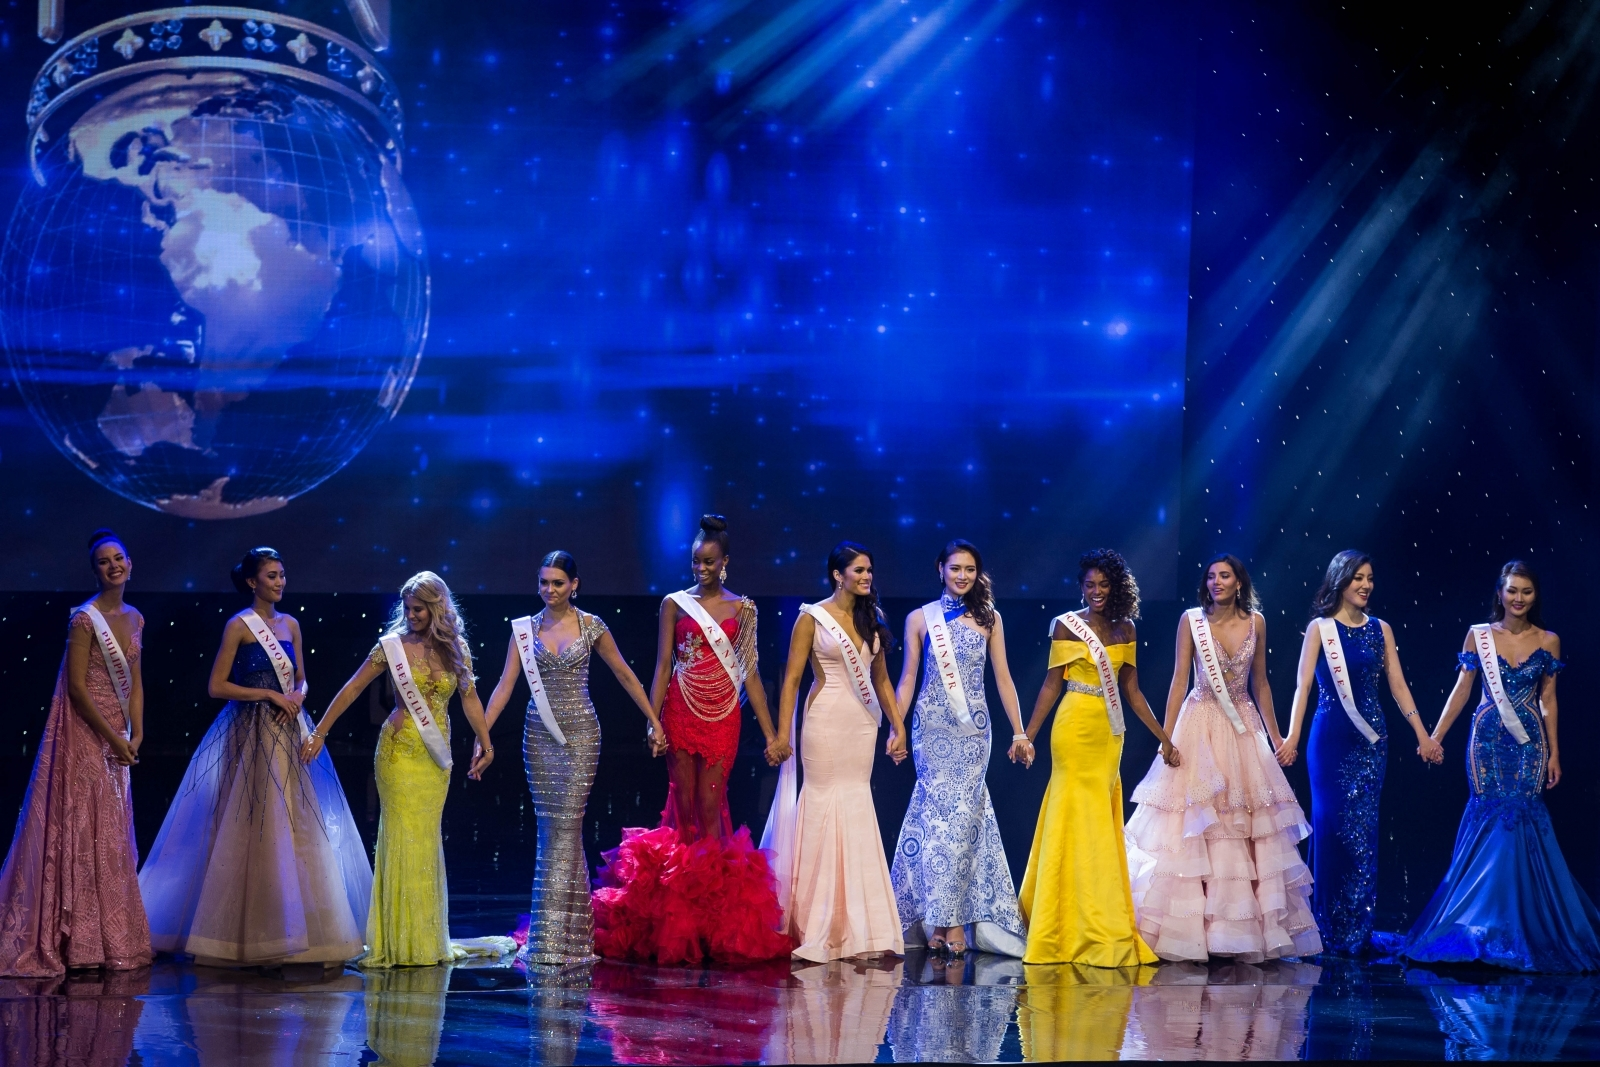 Miss World 2017 Live Stream Where To Watch The 67th